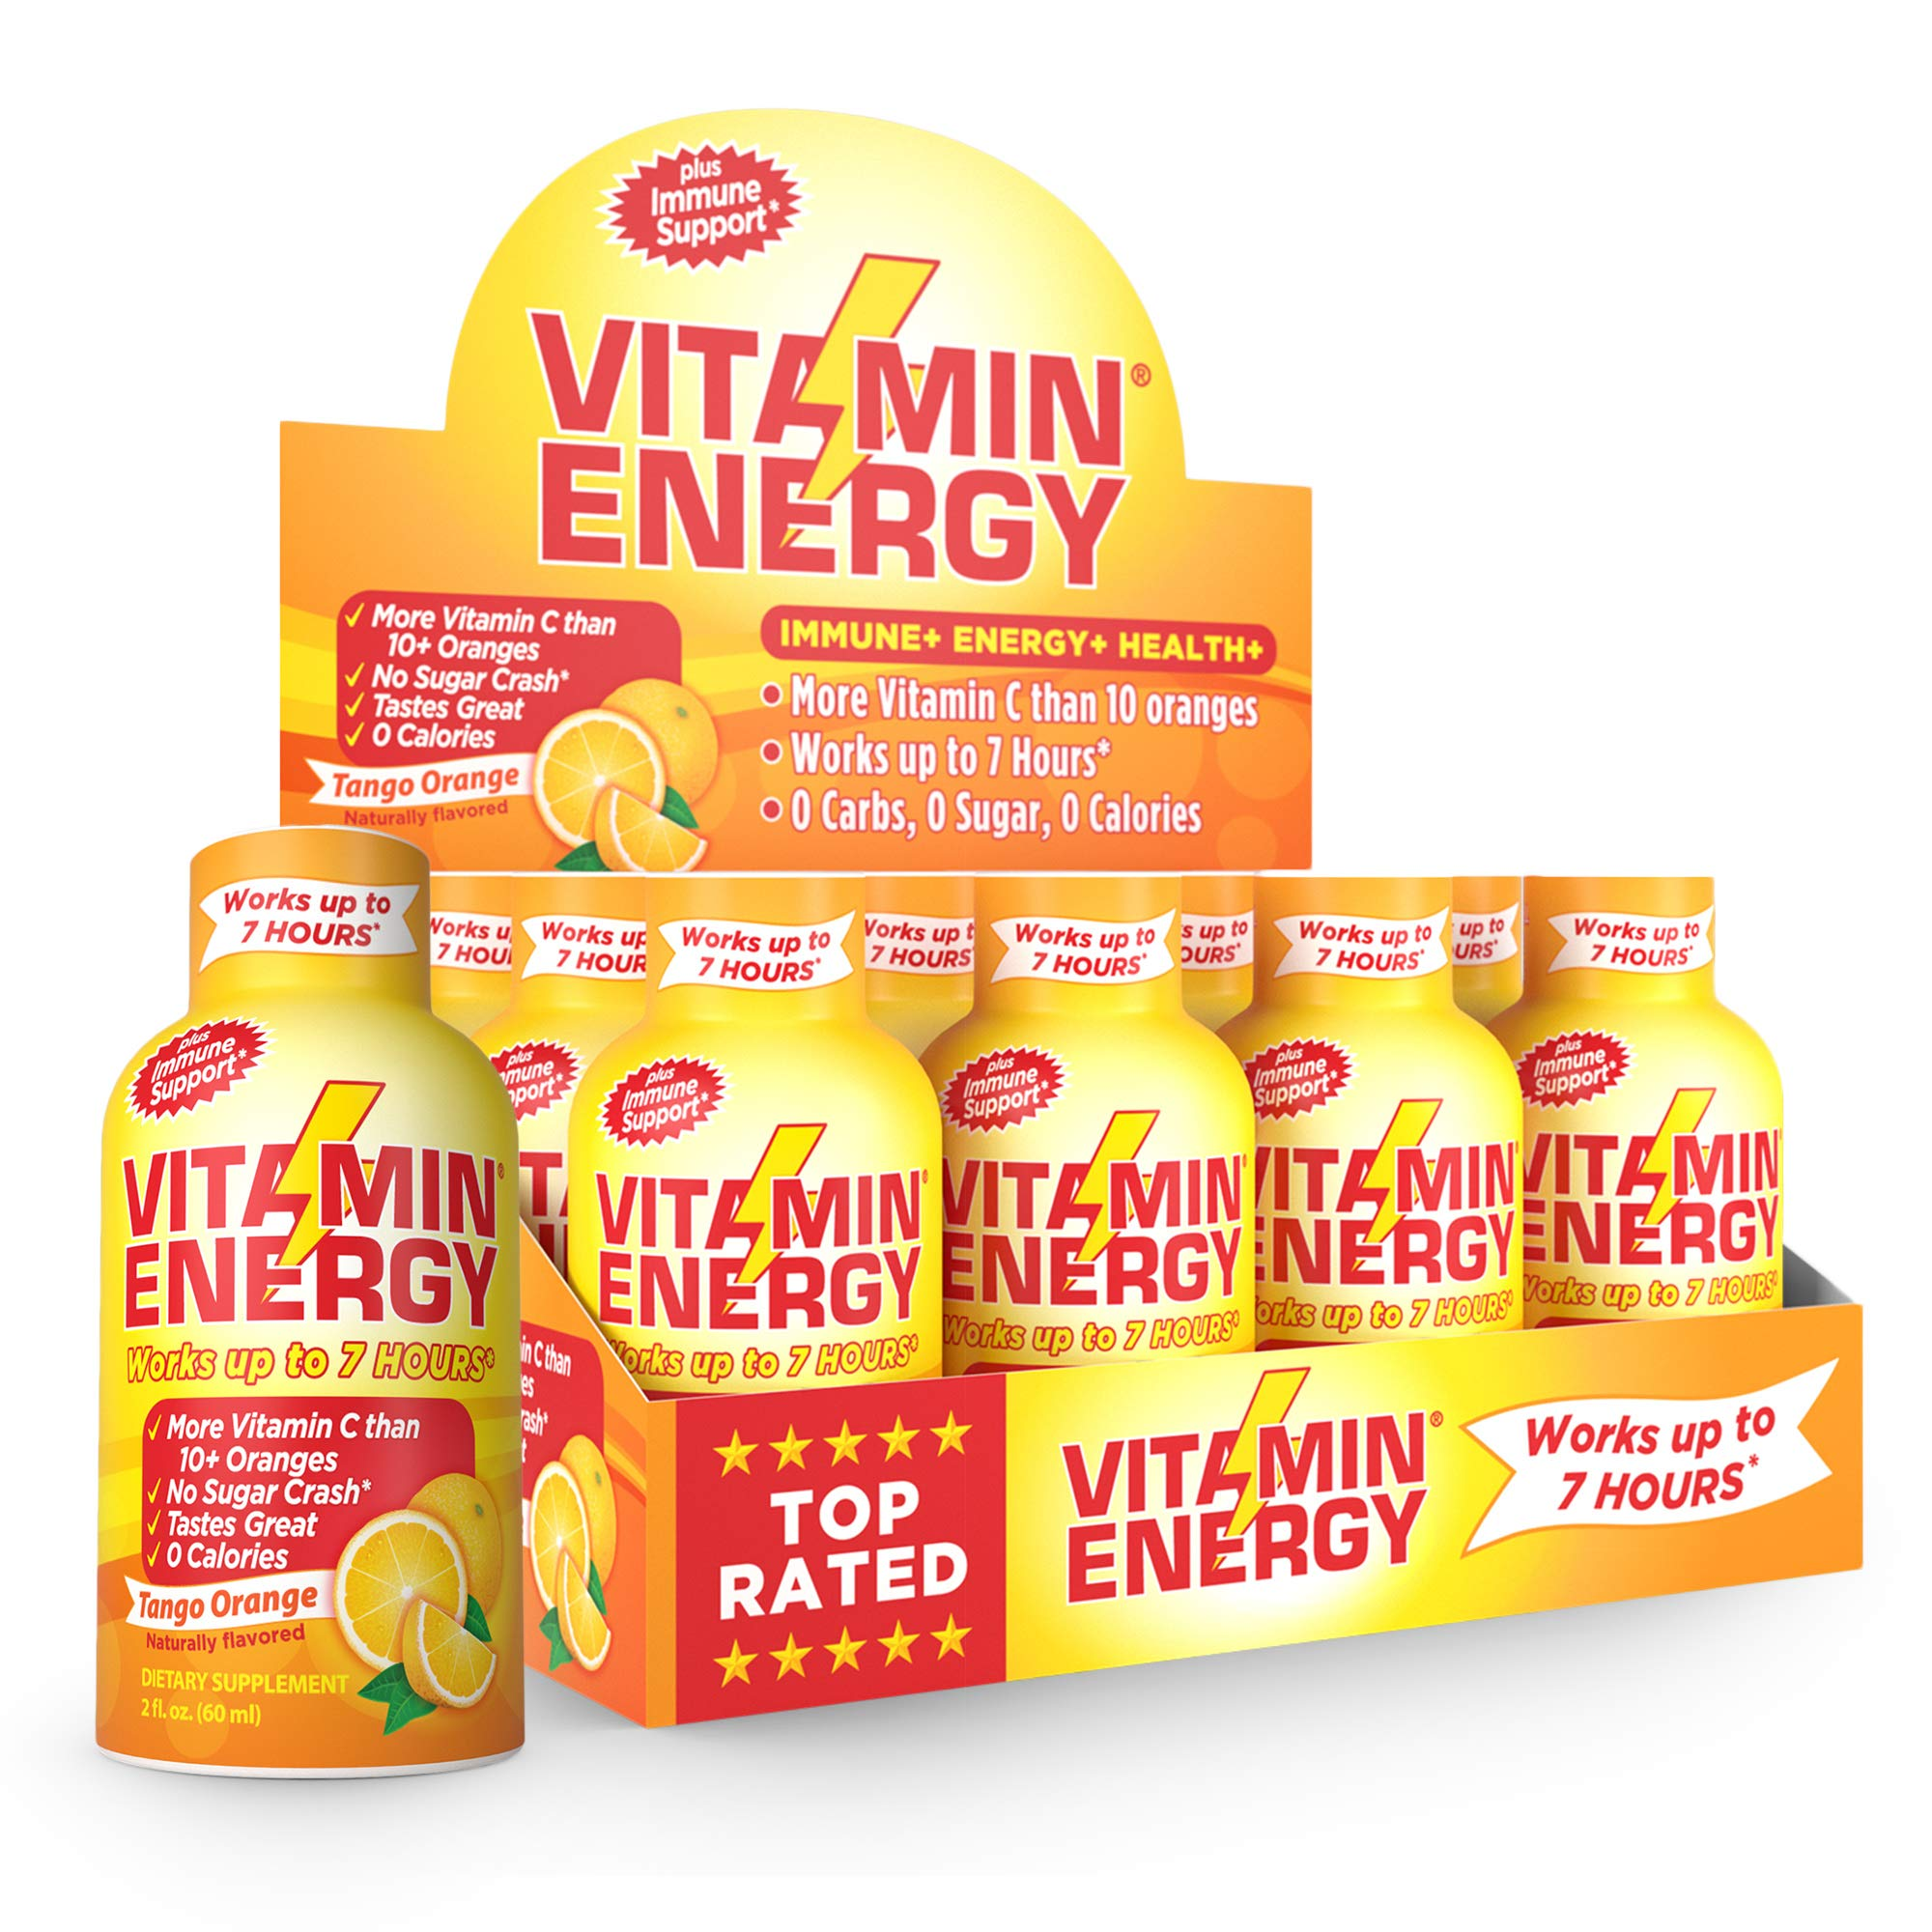 Vitamin Energy Shots – up to 7 Hours of Energy, More Vitamin C Than 10 Oranges, 0 Calories (24 Count)